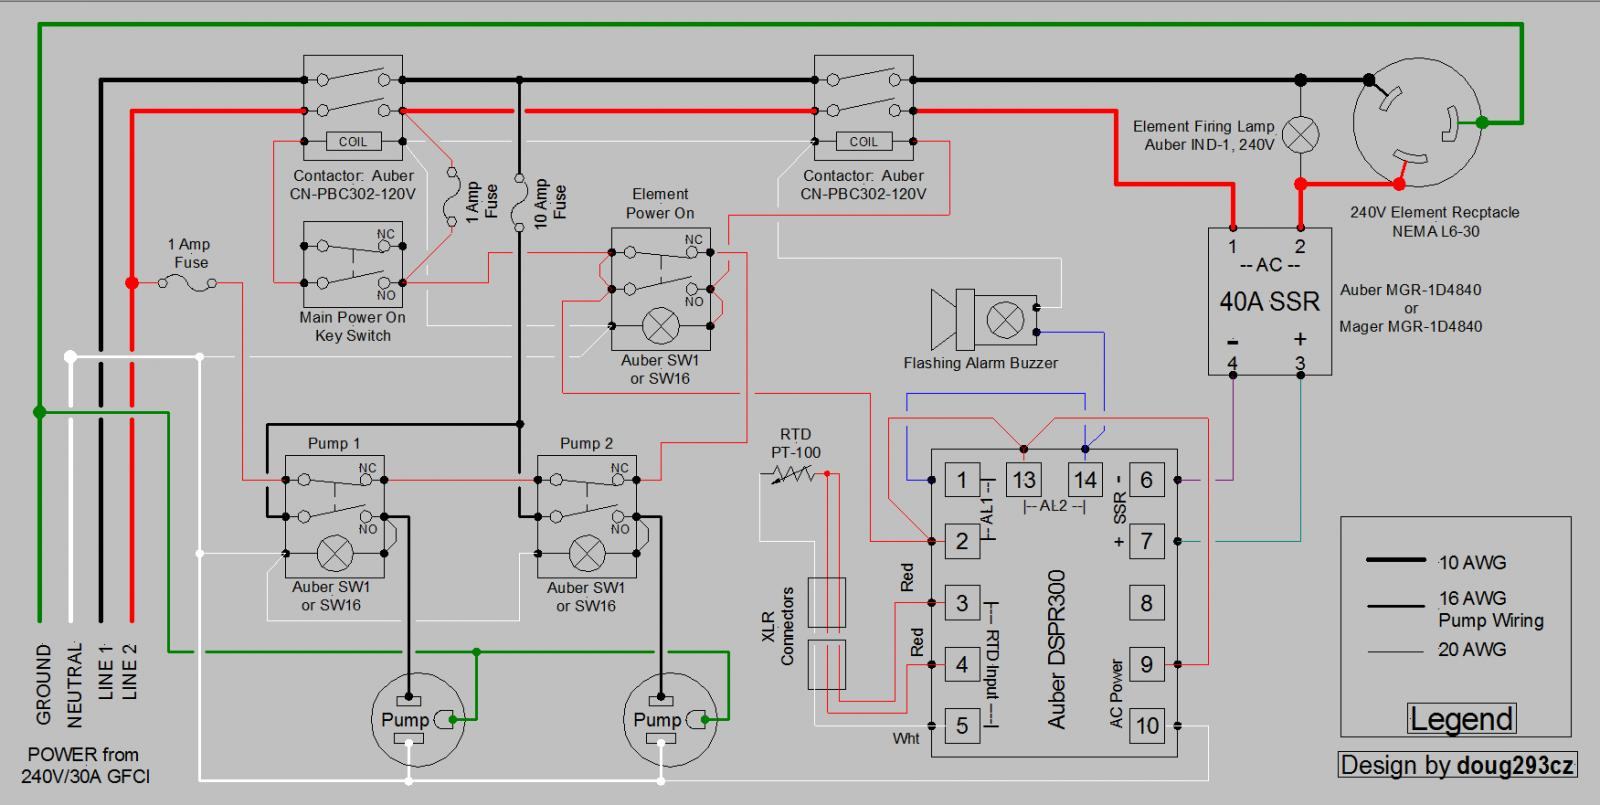 Coleman 3400 Series Wiring Diagram Daily Update Contemporary Heat Probe Pid Sketch